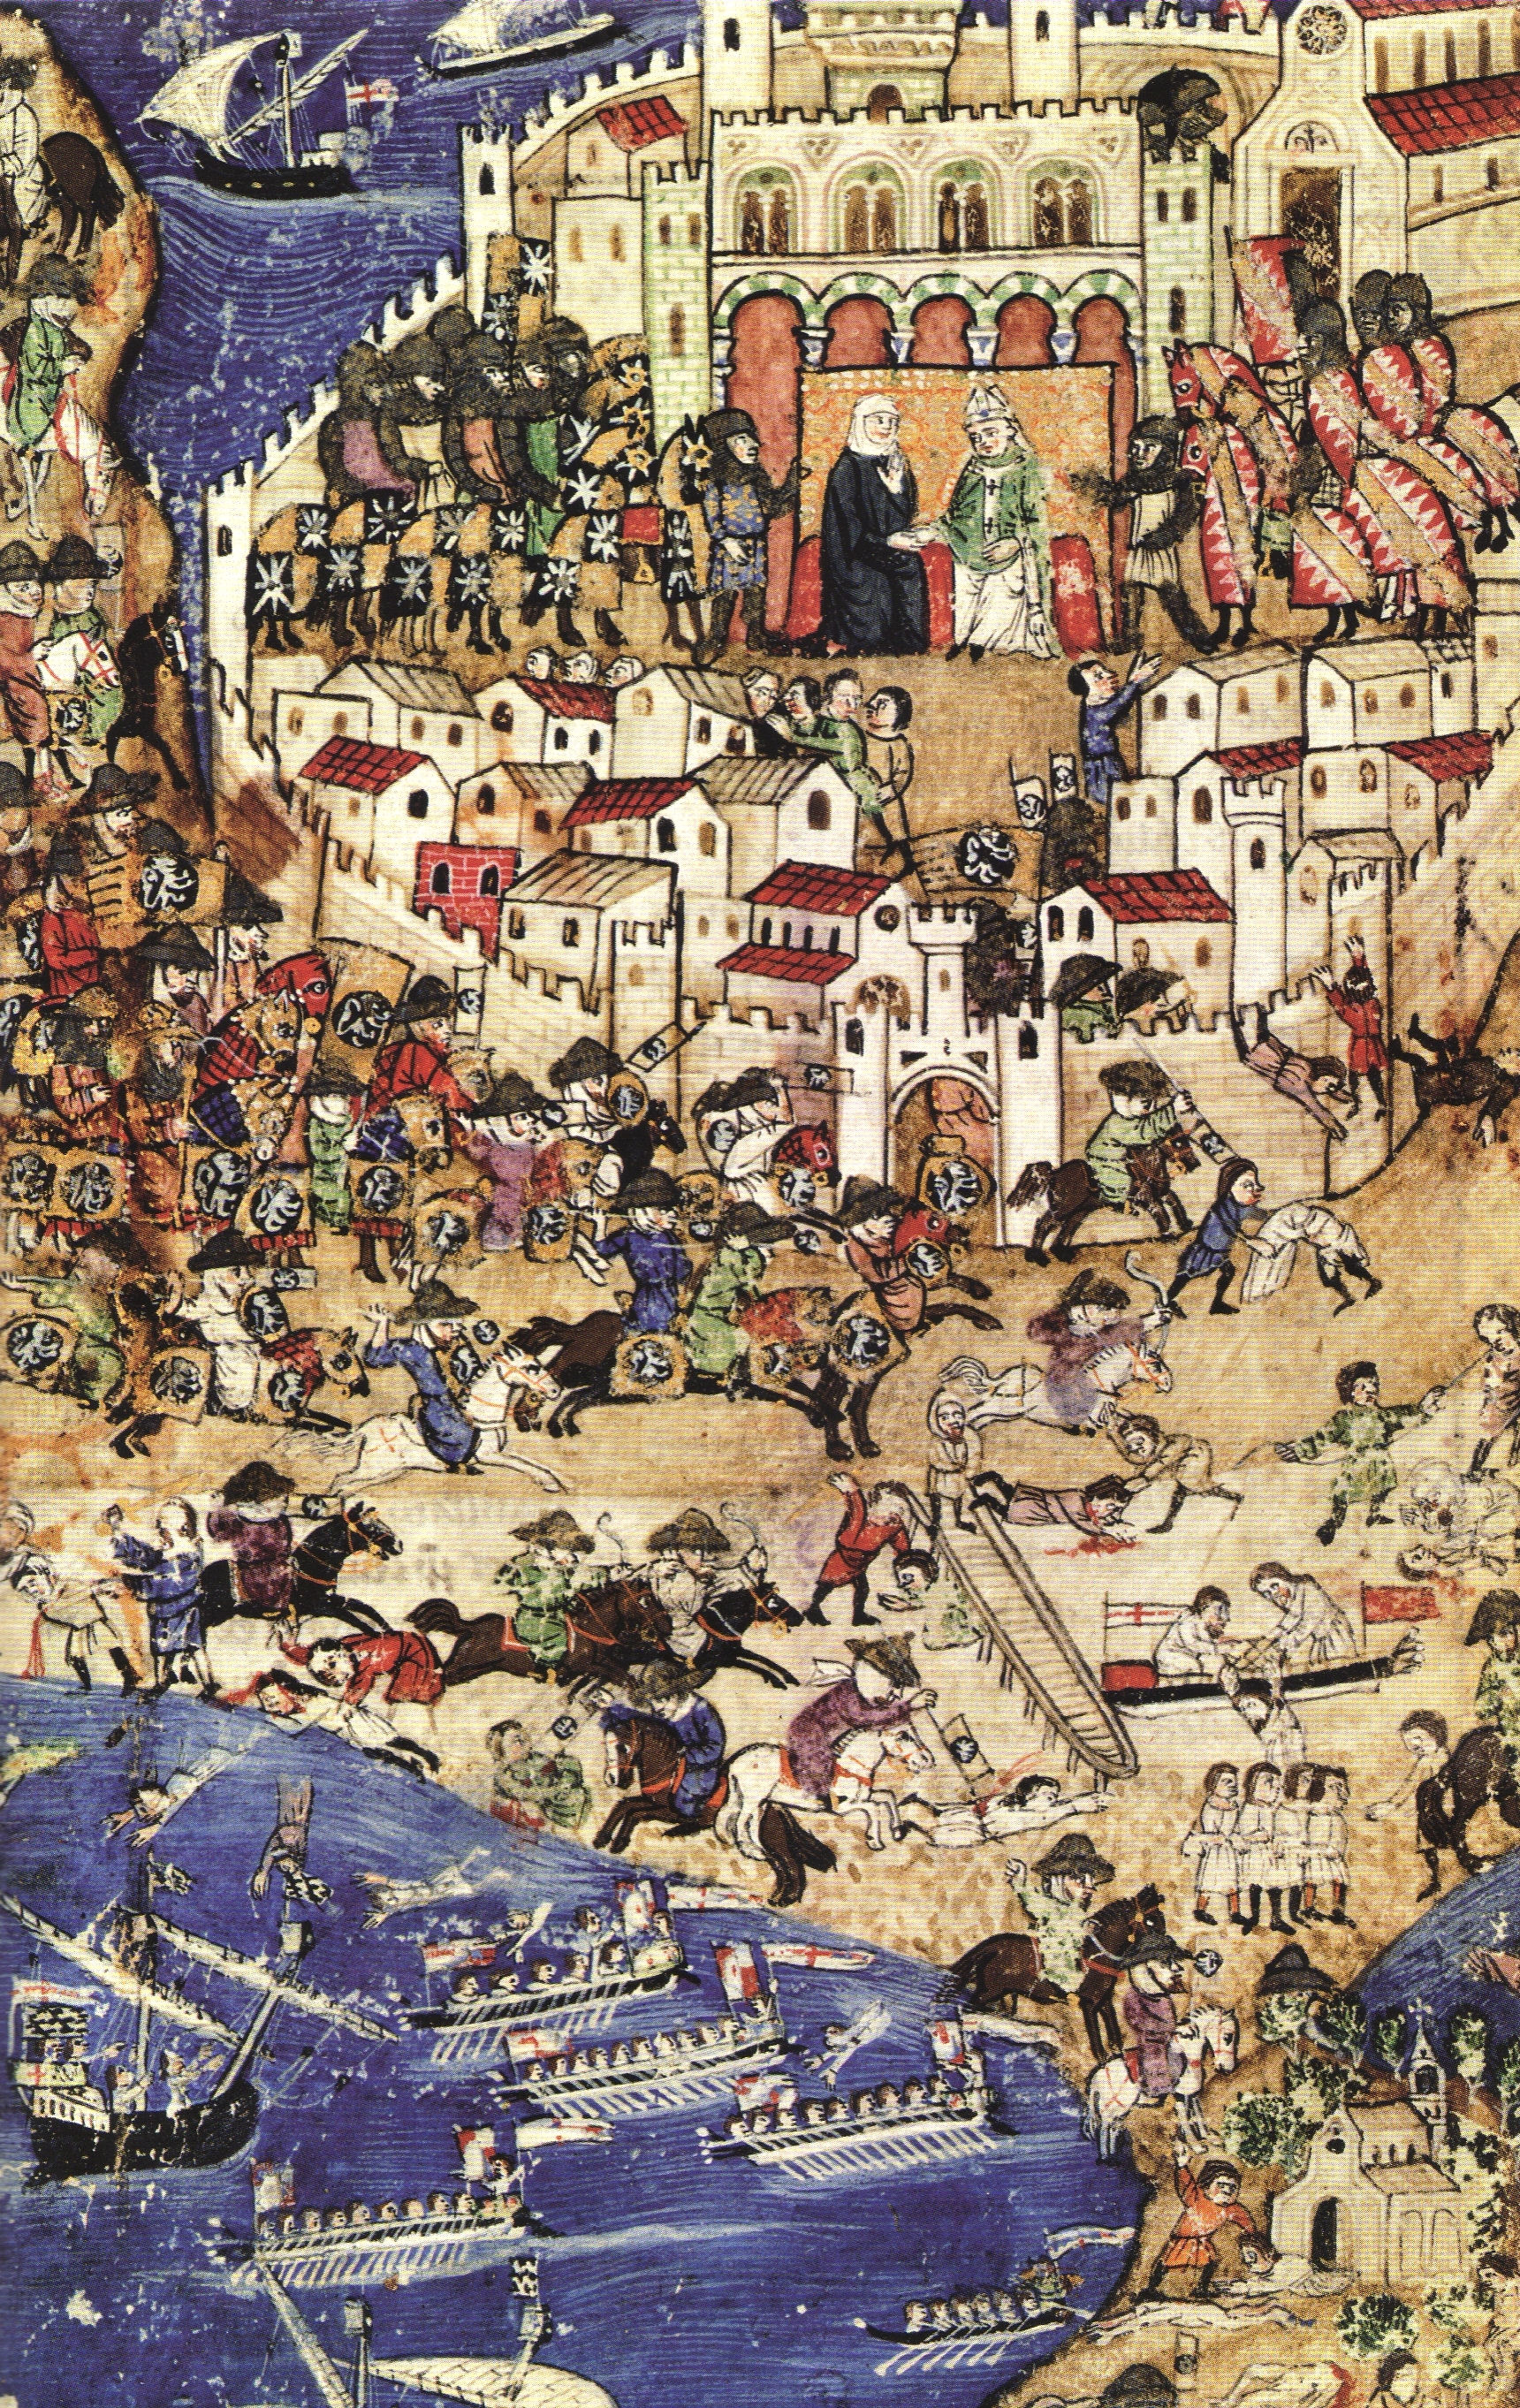 File:Siege of Tripoli Painting (1289).jpg